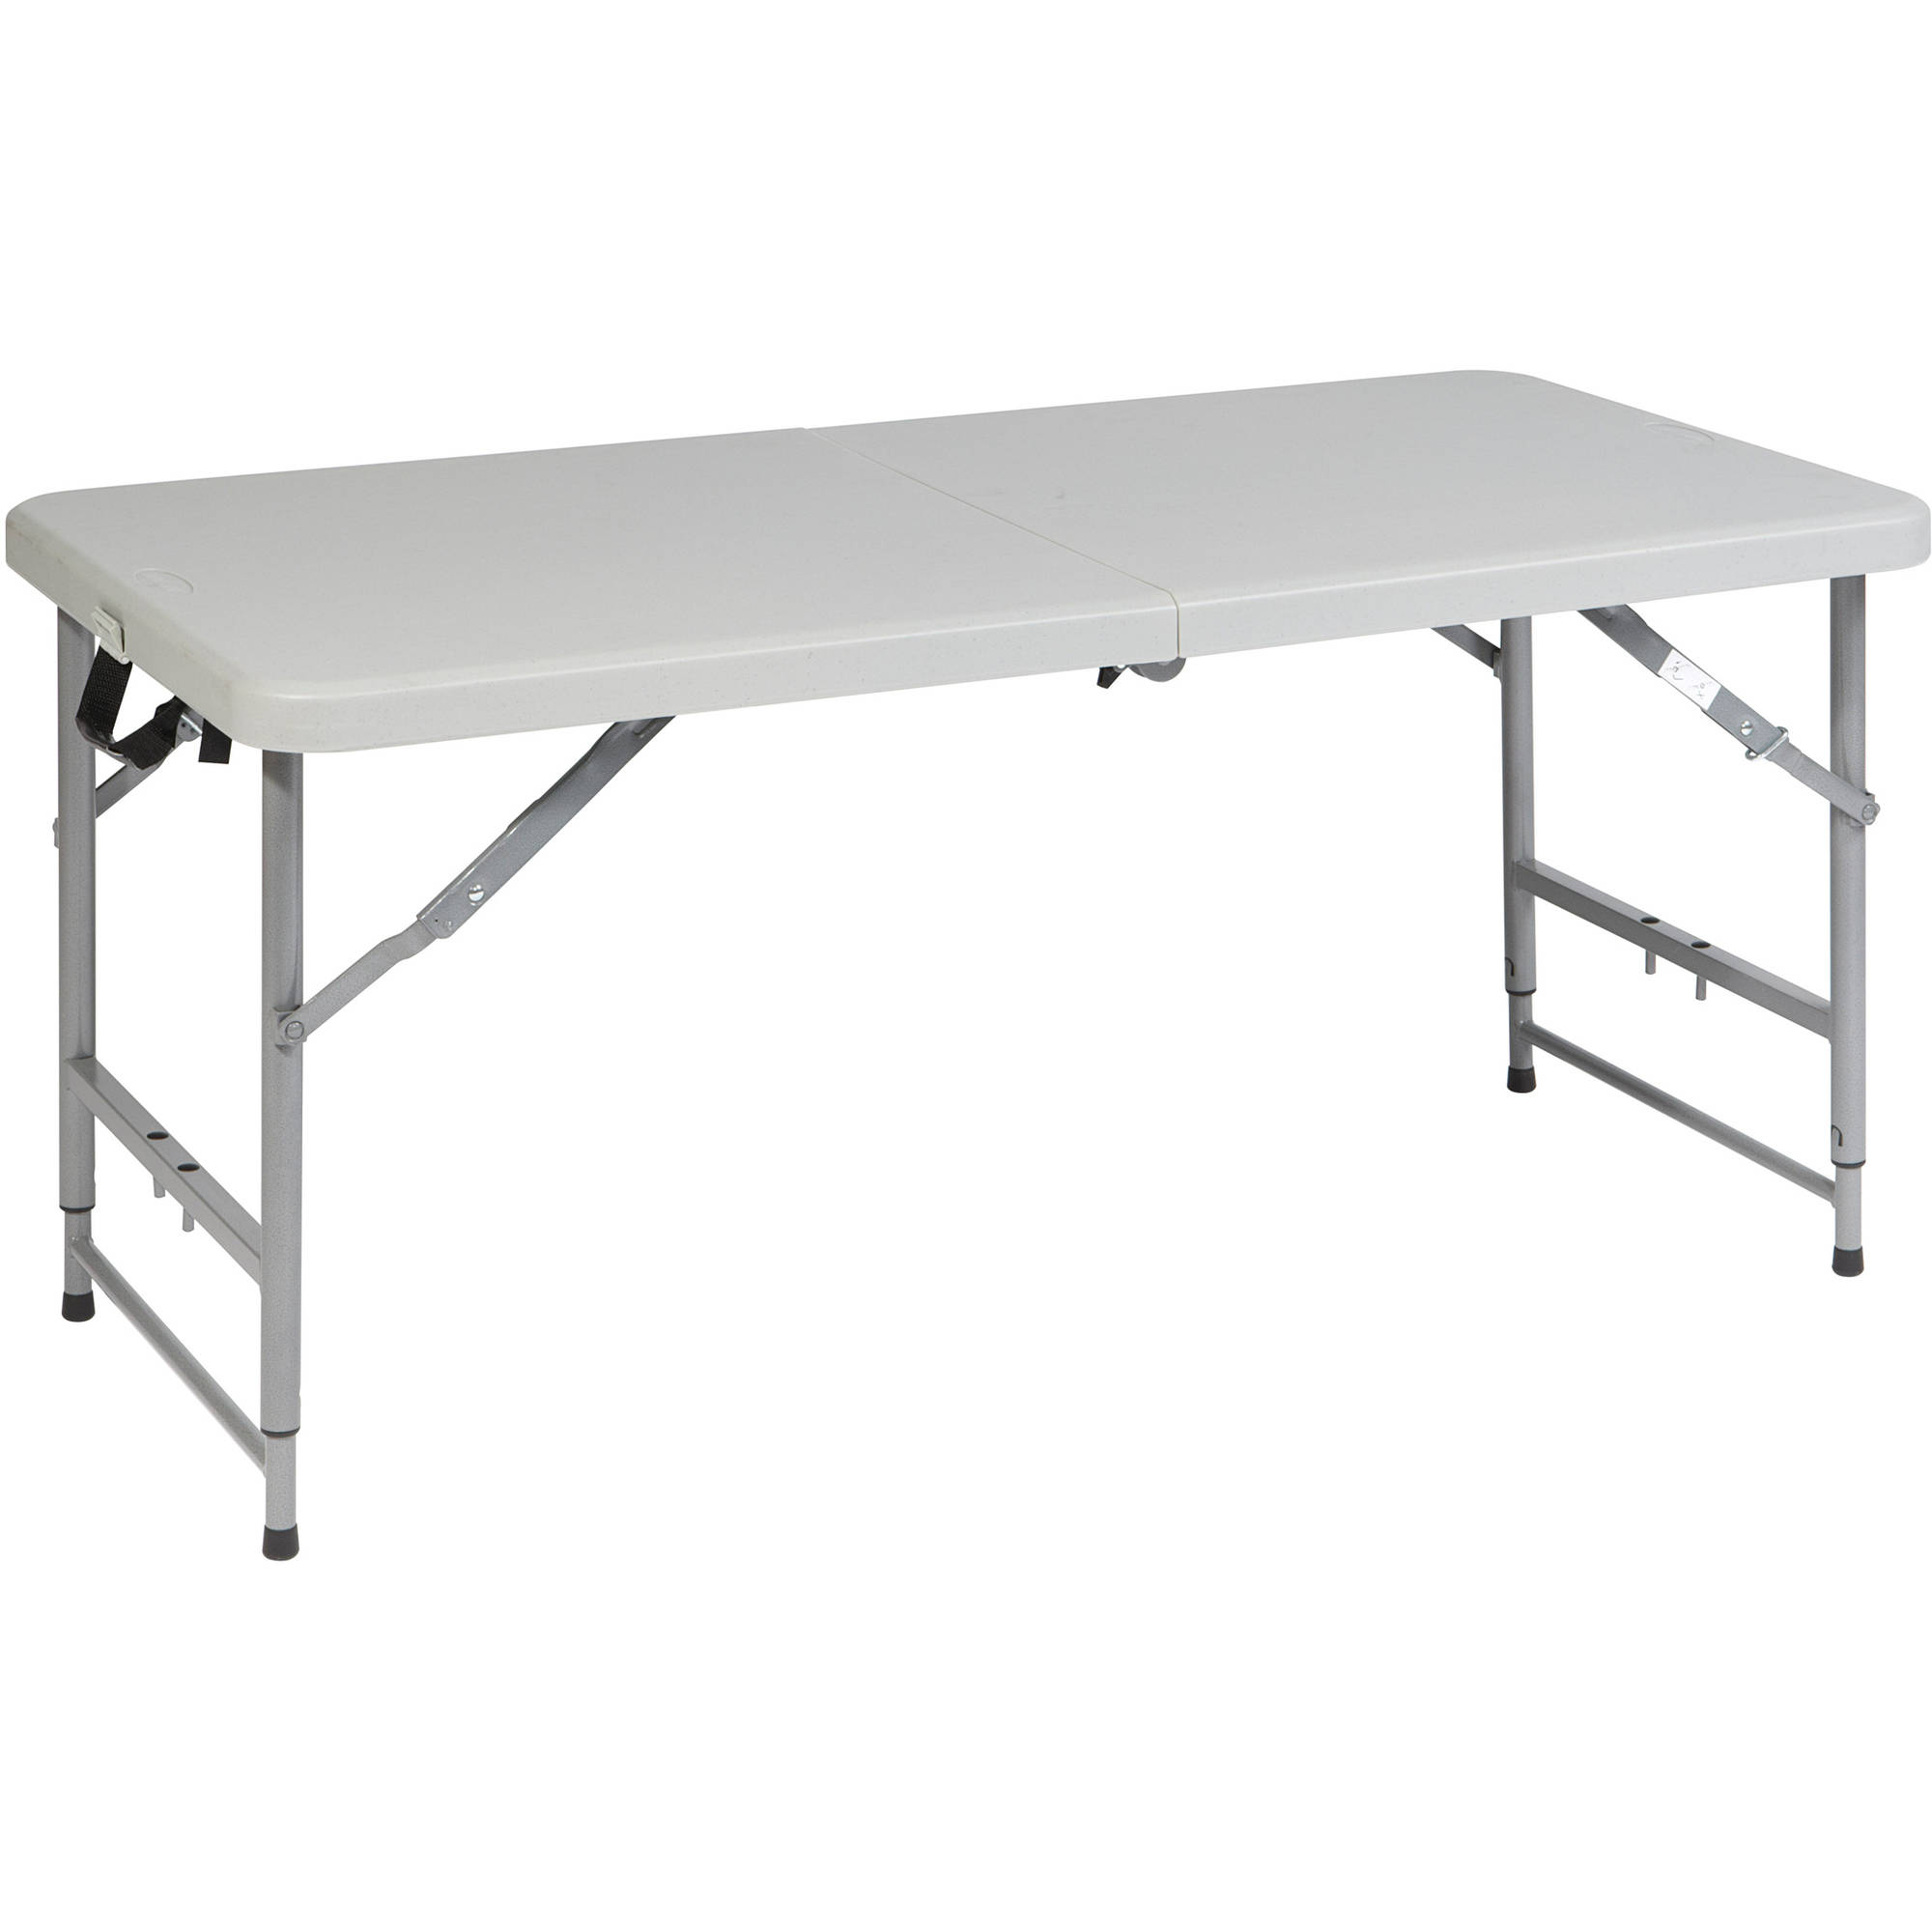 Multi Purpose Table work smart 4' height adjustable fold in half resin multi-purpose